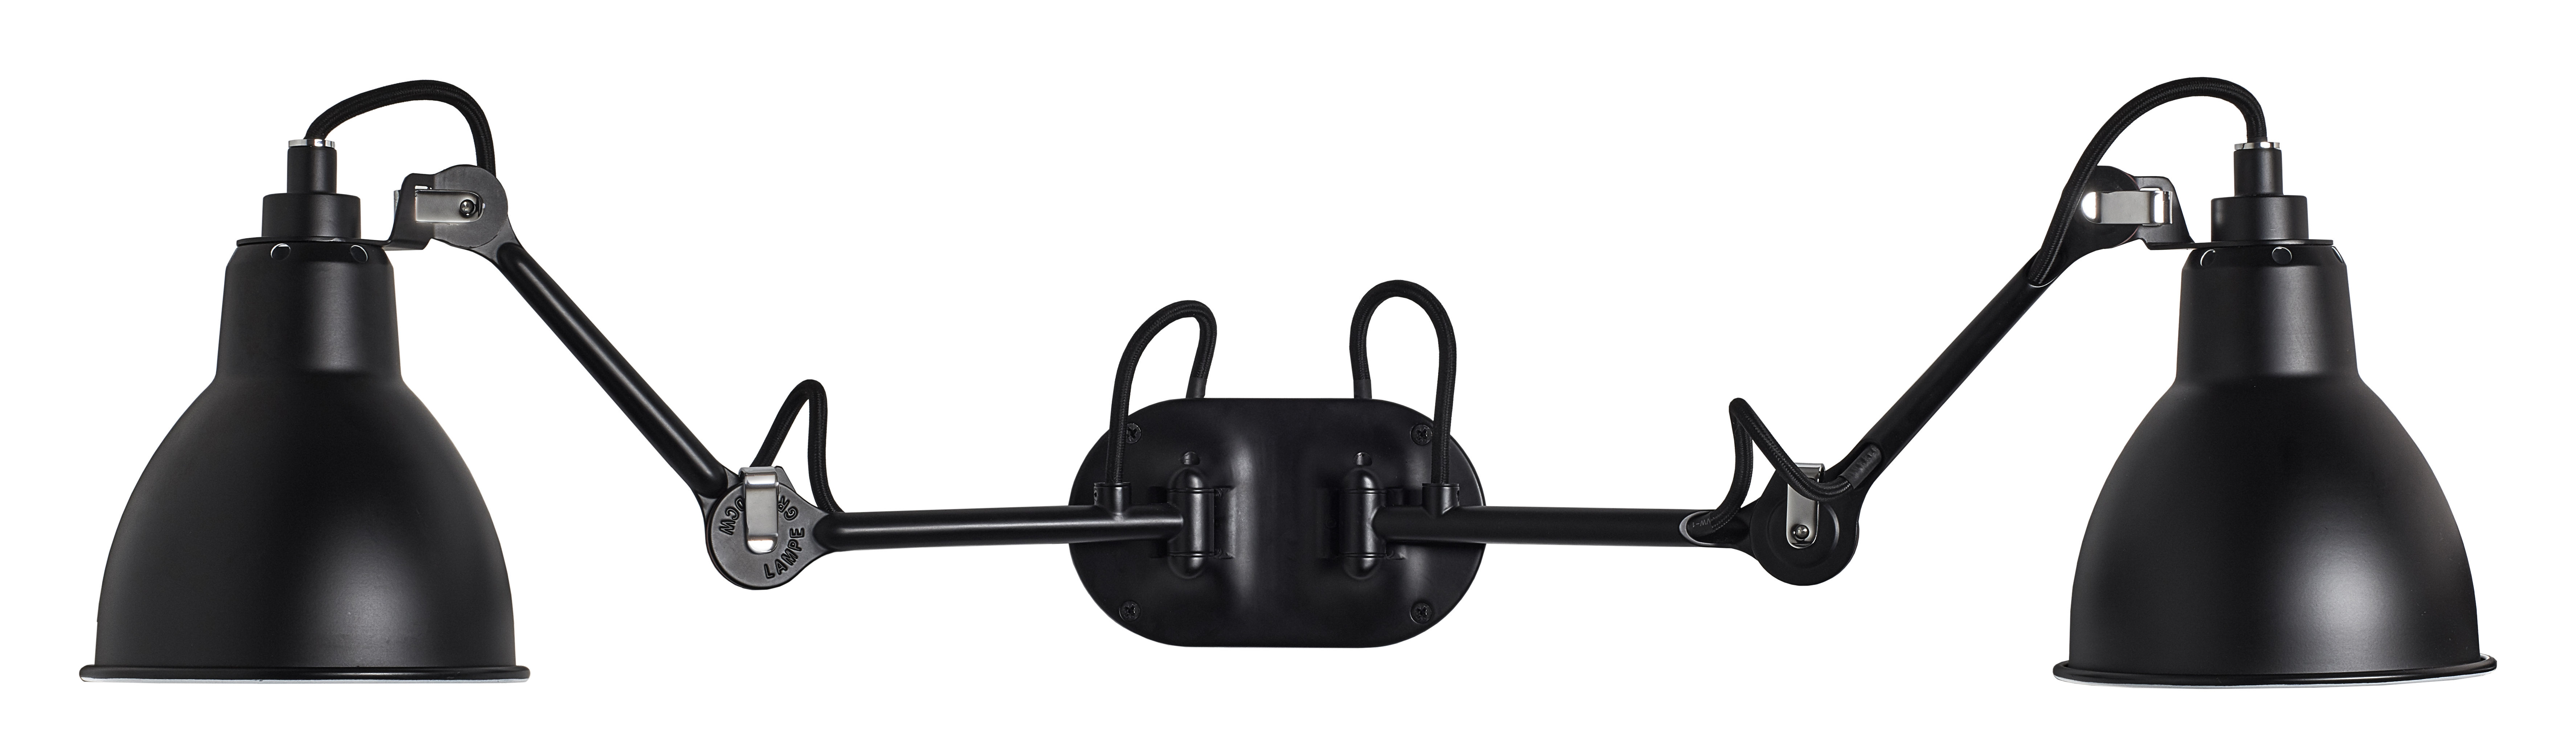 Lighting - Wall Lights - N° 204  Double Wall light - Lampe Gras by DCW éditions - Black satin - Aluminium, Steel